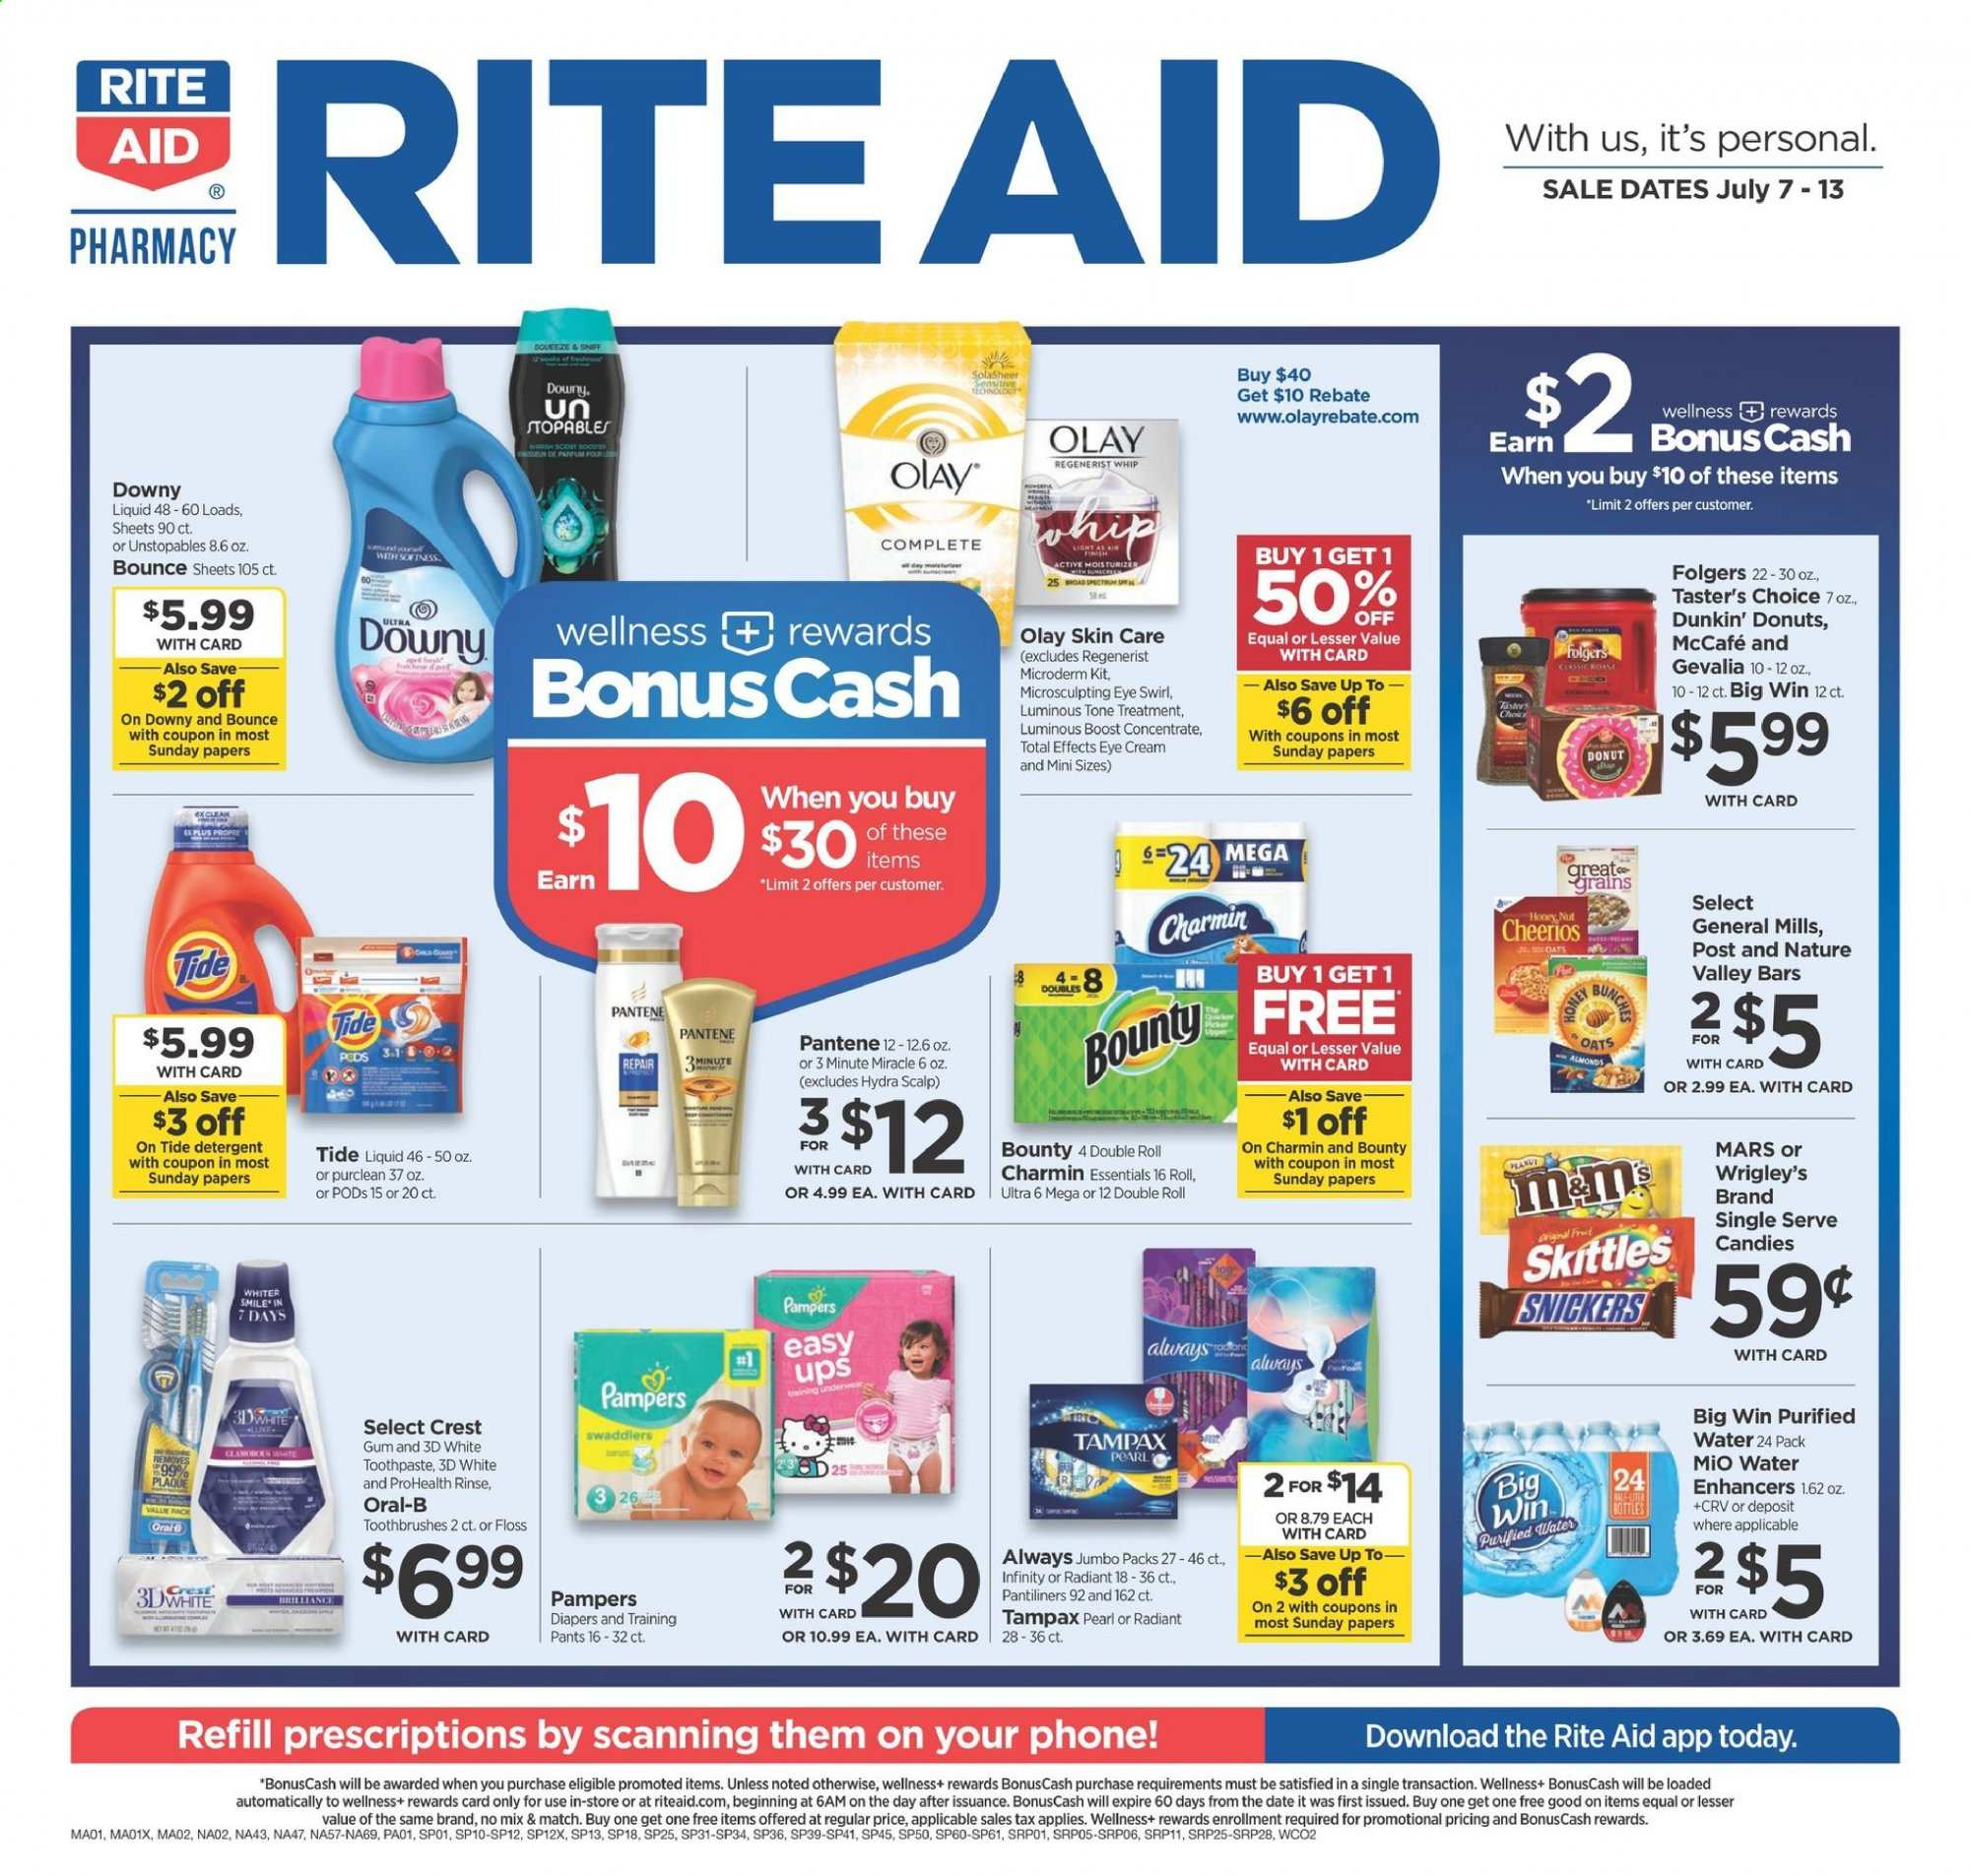 RITE AID Flyer - 07.07.2019 - 07.13.2019 - Sales products - candy, Snickers, Bounty, Mars, oats, Cheerios, water, Folgers, Pampers, diapers, detergent, Downy, Tide, Unstopables, Oral-b, toothpaste, Tampax, pantiliners, moisturizer, Olay, Pantene, repair, cream, donut, essentials. Page 1.